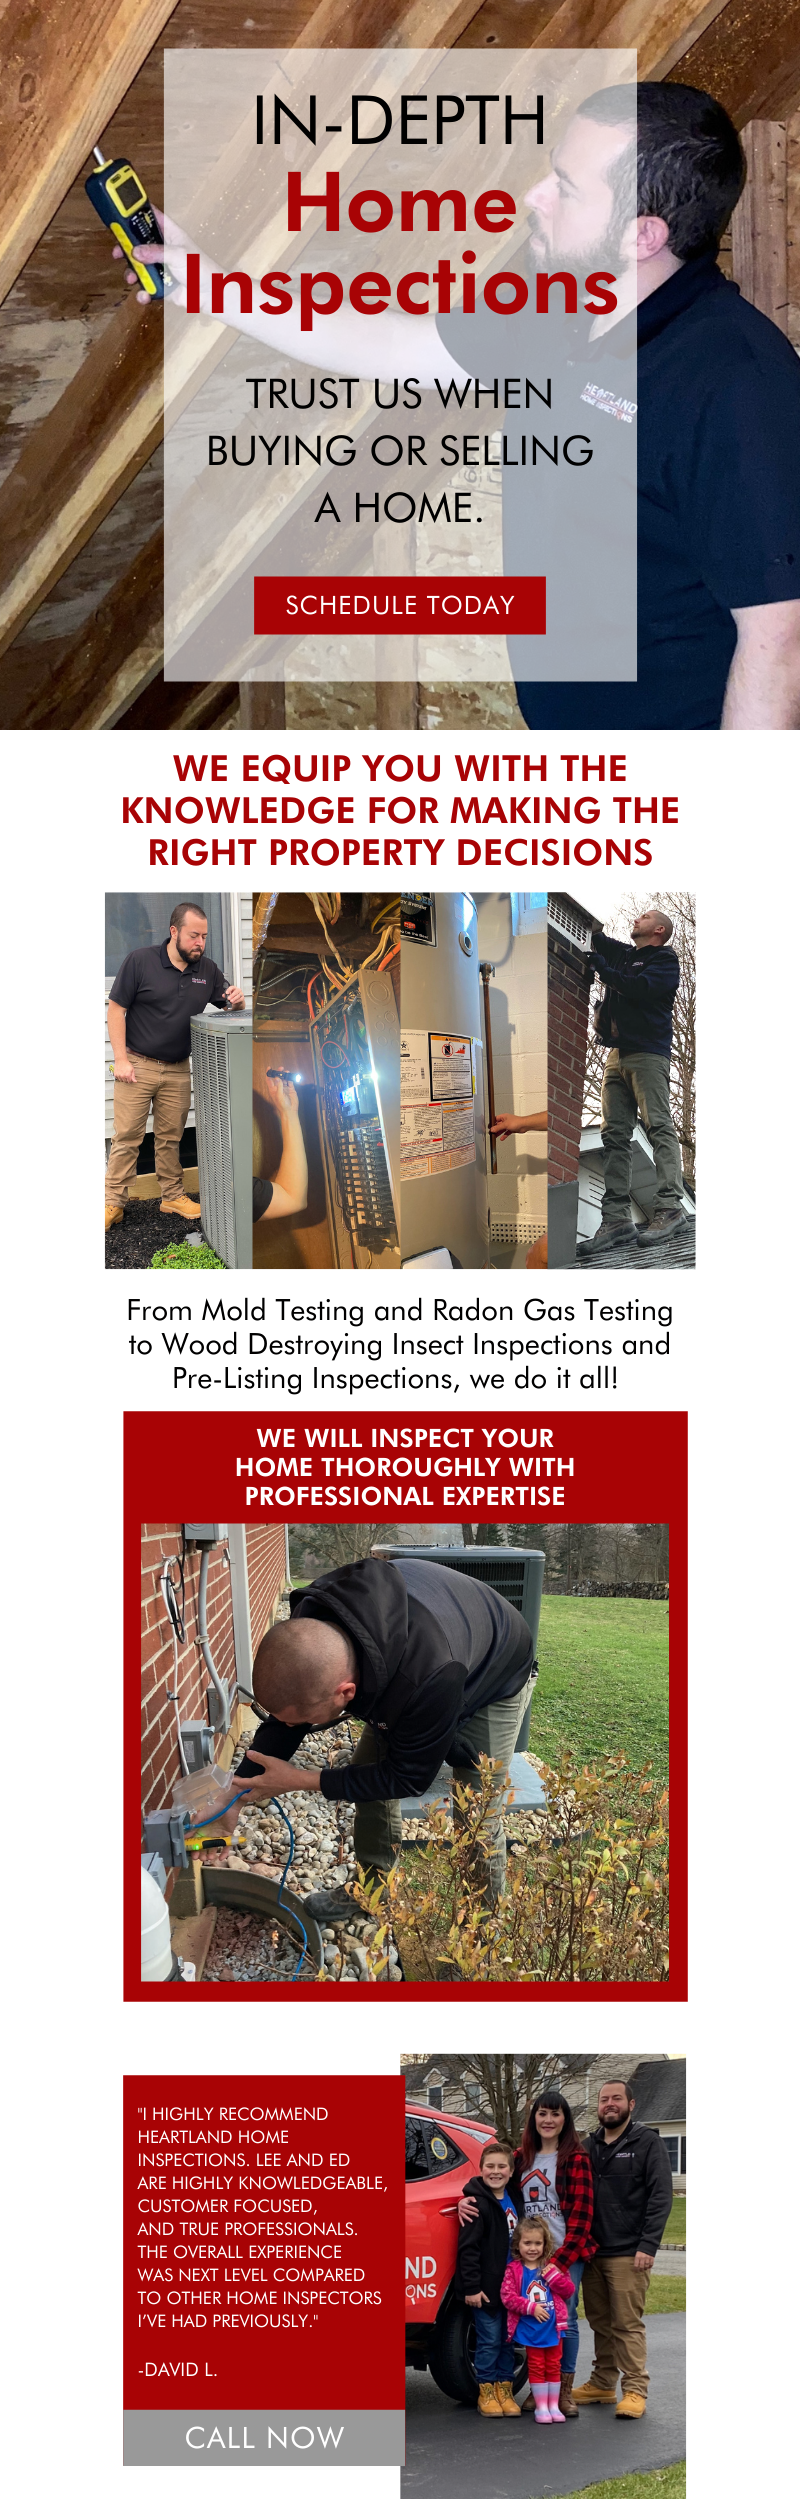 In-Depth Home Inspections! 3